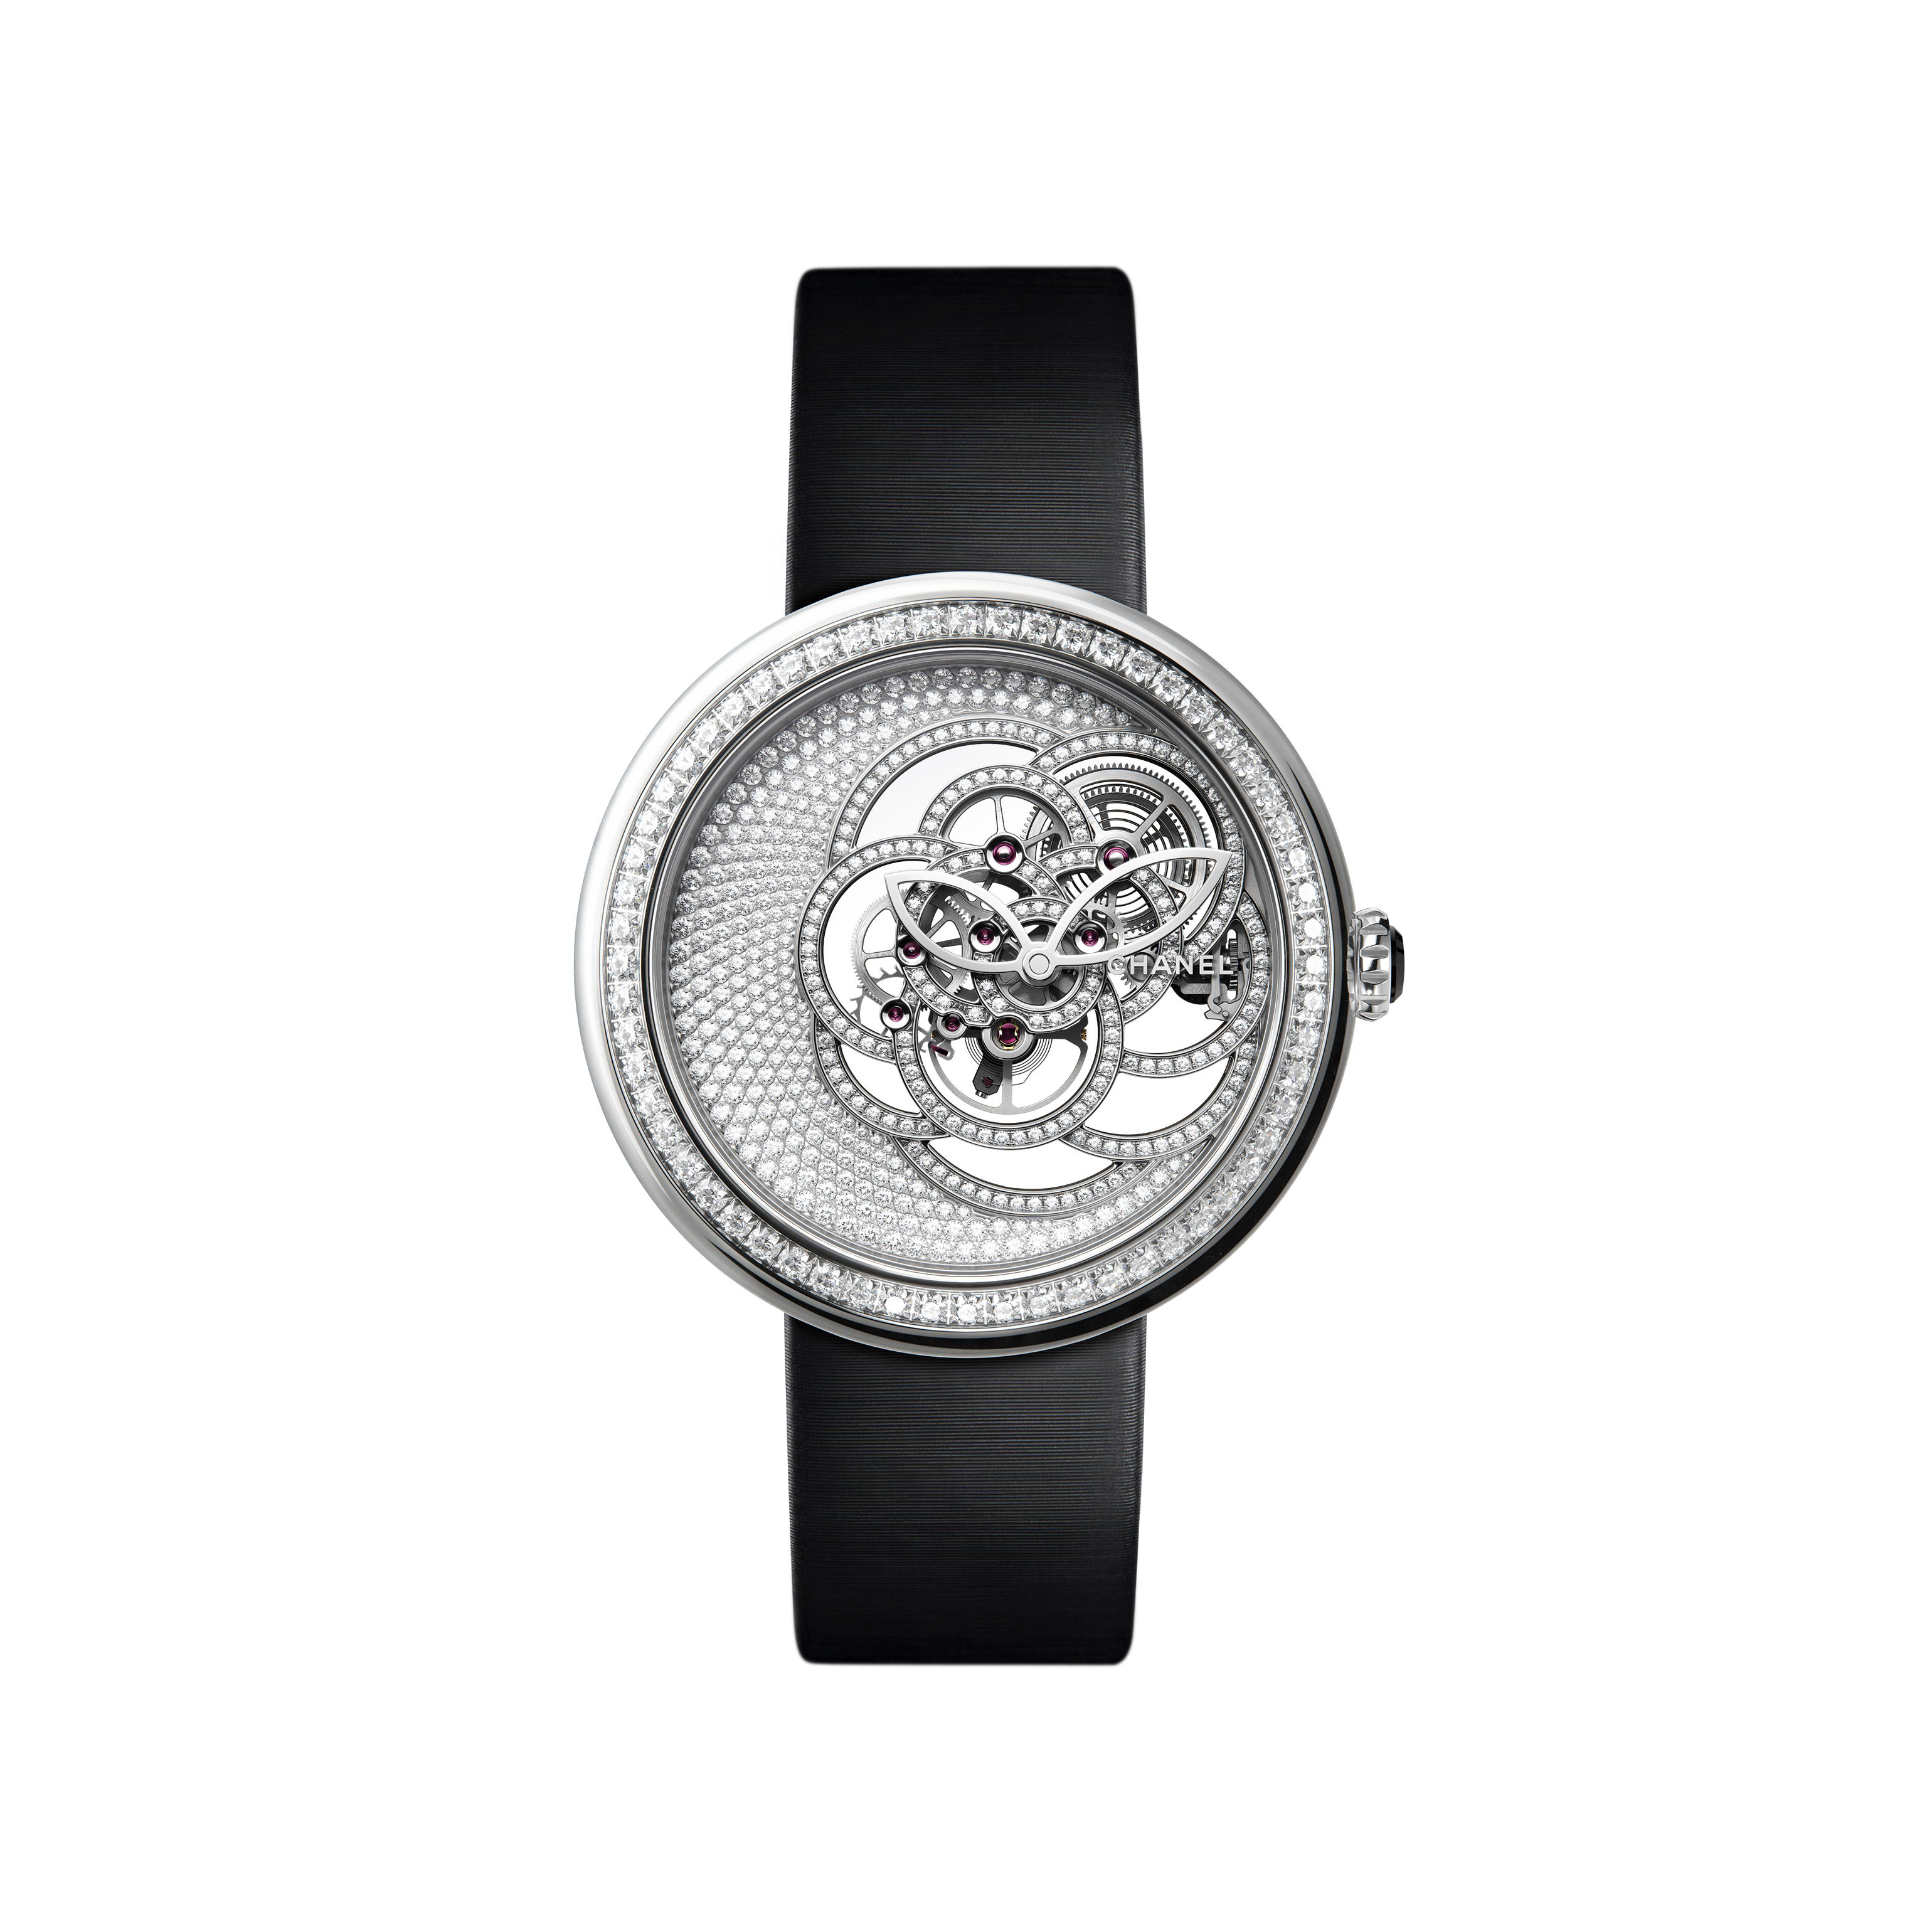 Mademoiselle Privé Camélia Skeleton Watch - White gold case, dial and skeleton set with brilliant cut diamonds - CHANEL - Default view - see standard sized version